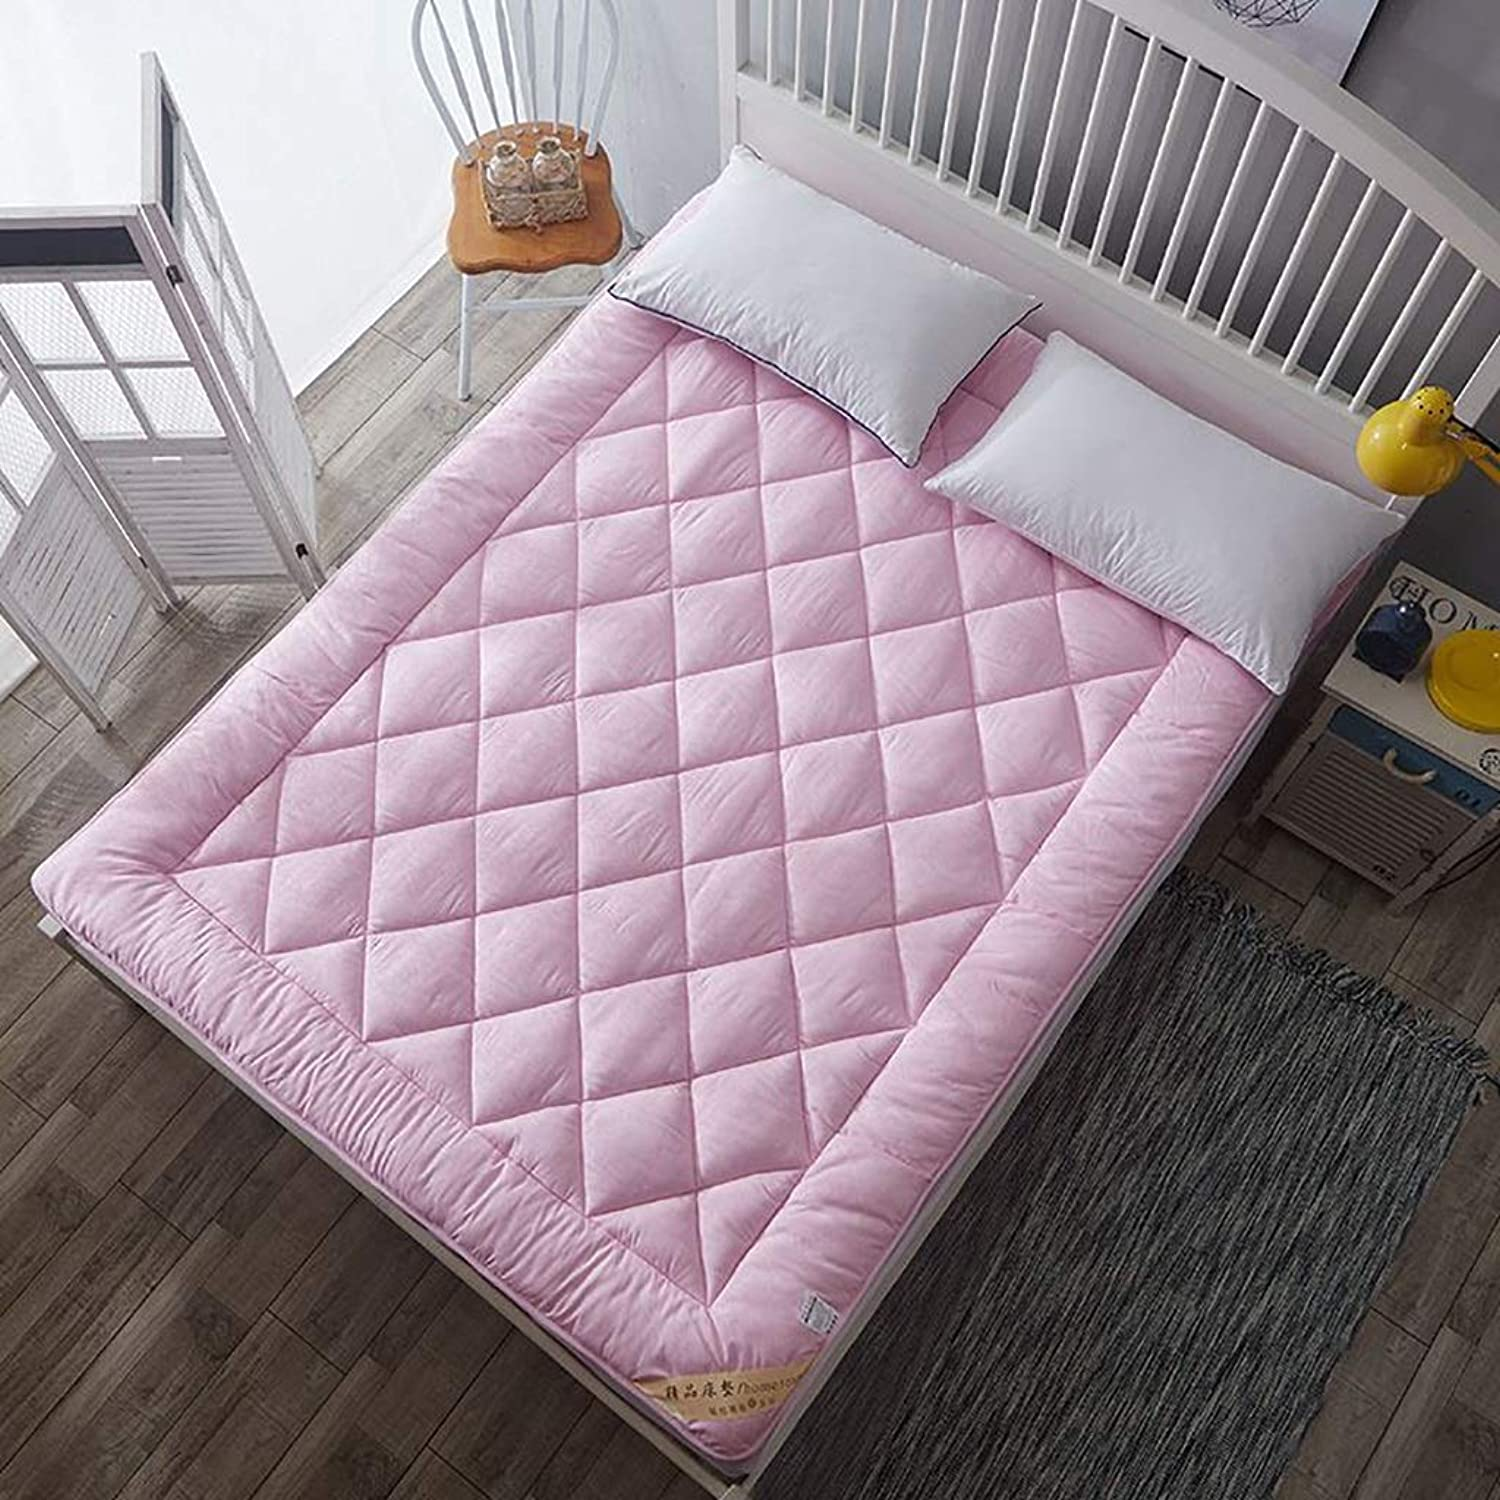 Student Dorm Mattress Double Futon Mattress Portable Sleeping Pad Foldable Futon Tatami Mattress (color   Pink, Size   1.0X2M Bed)